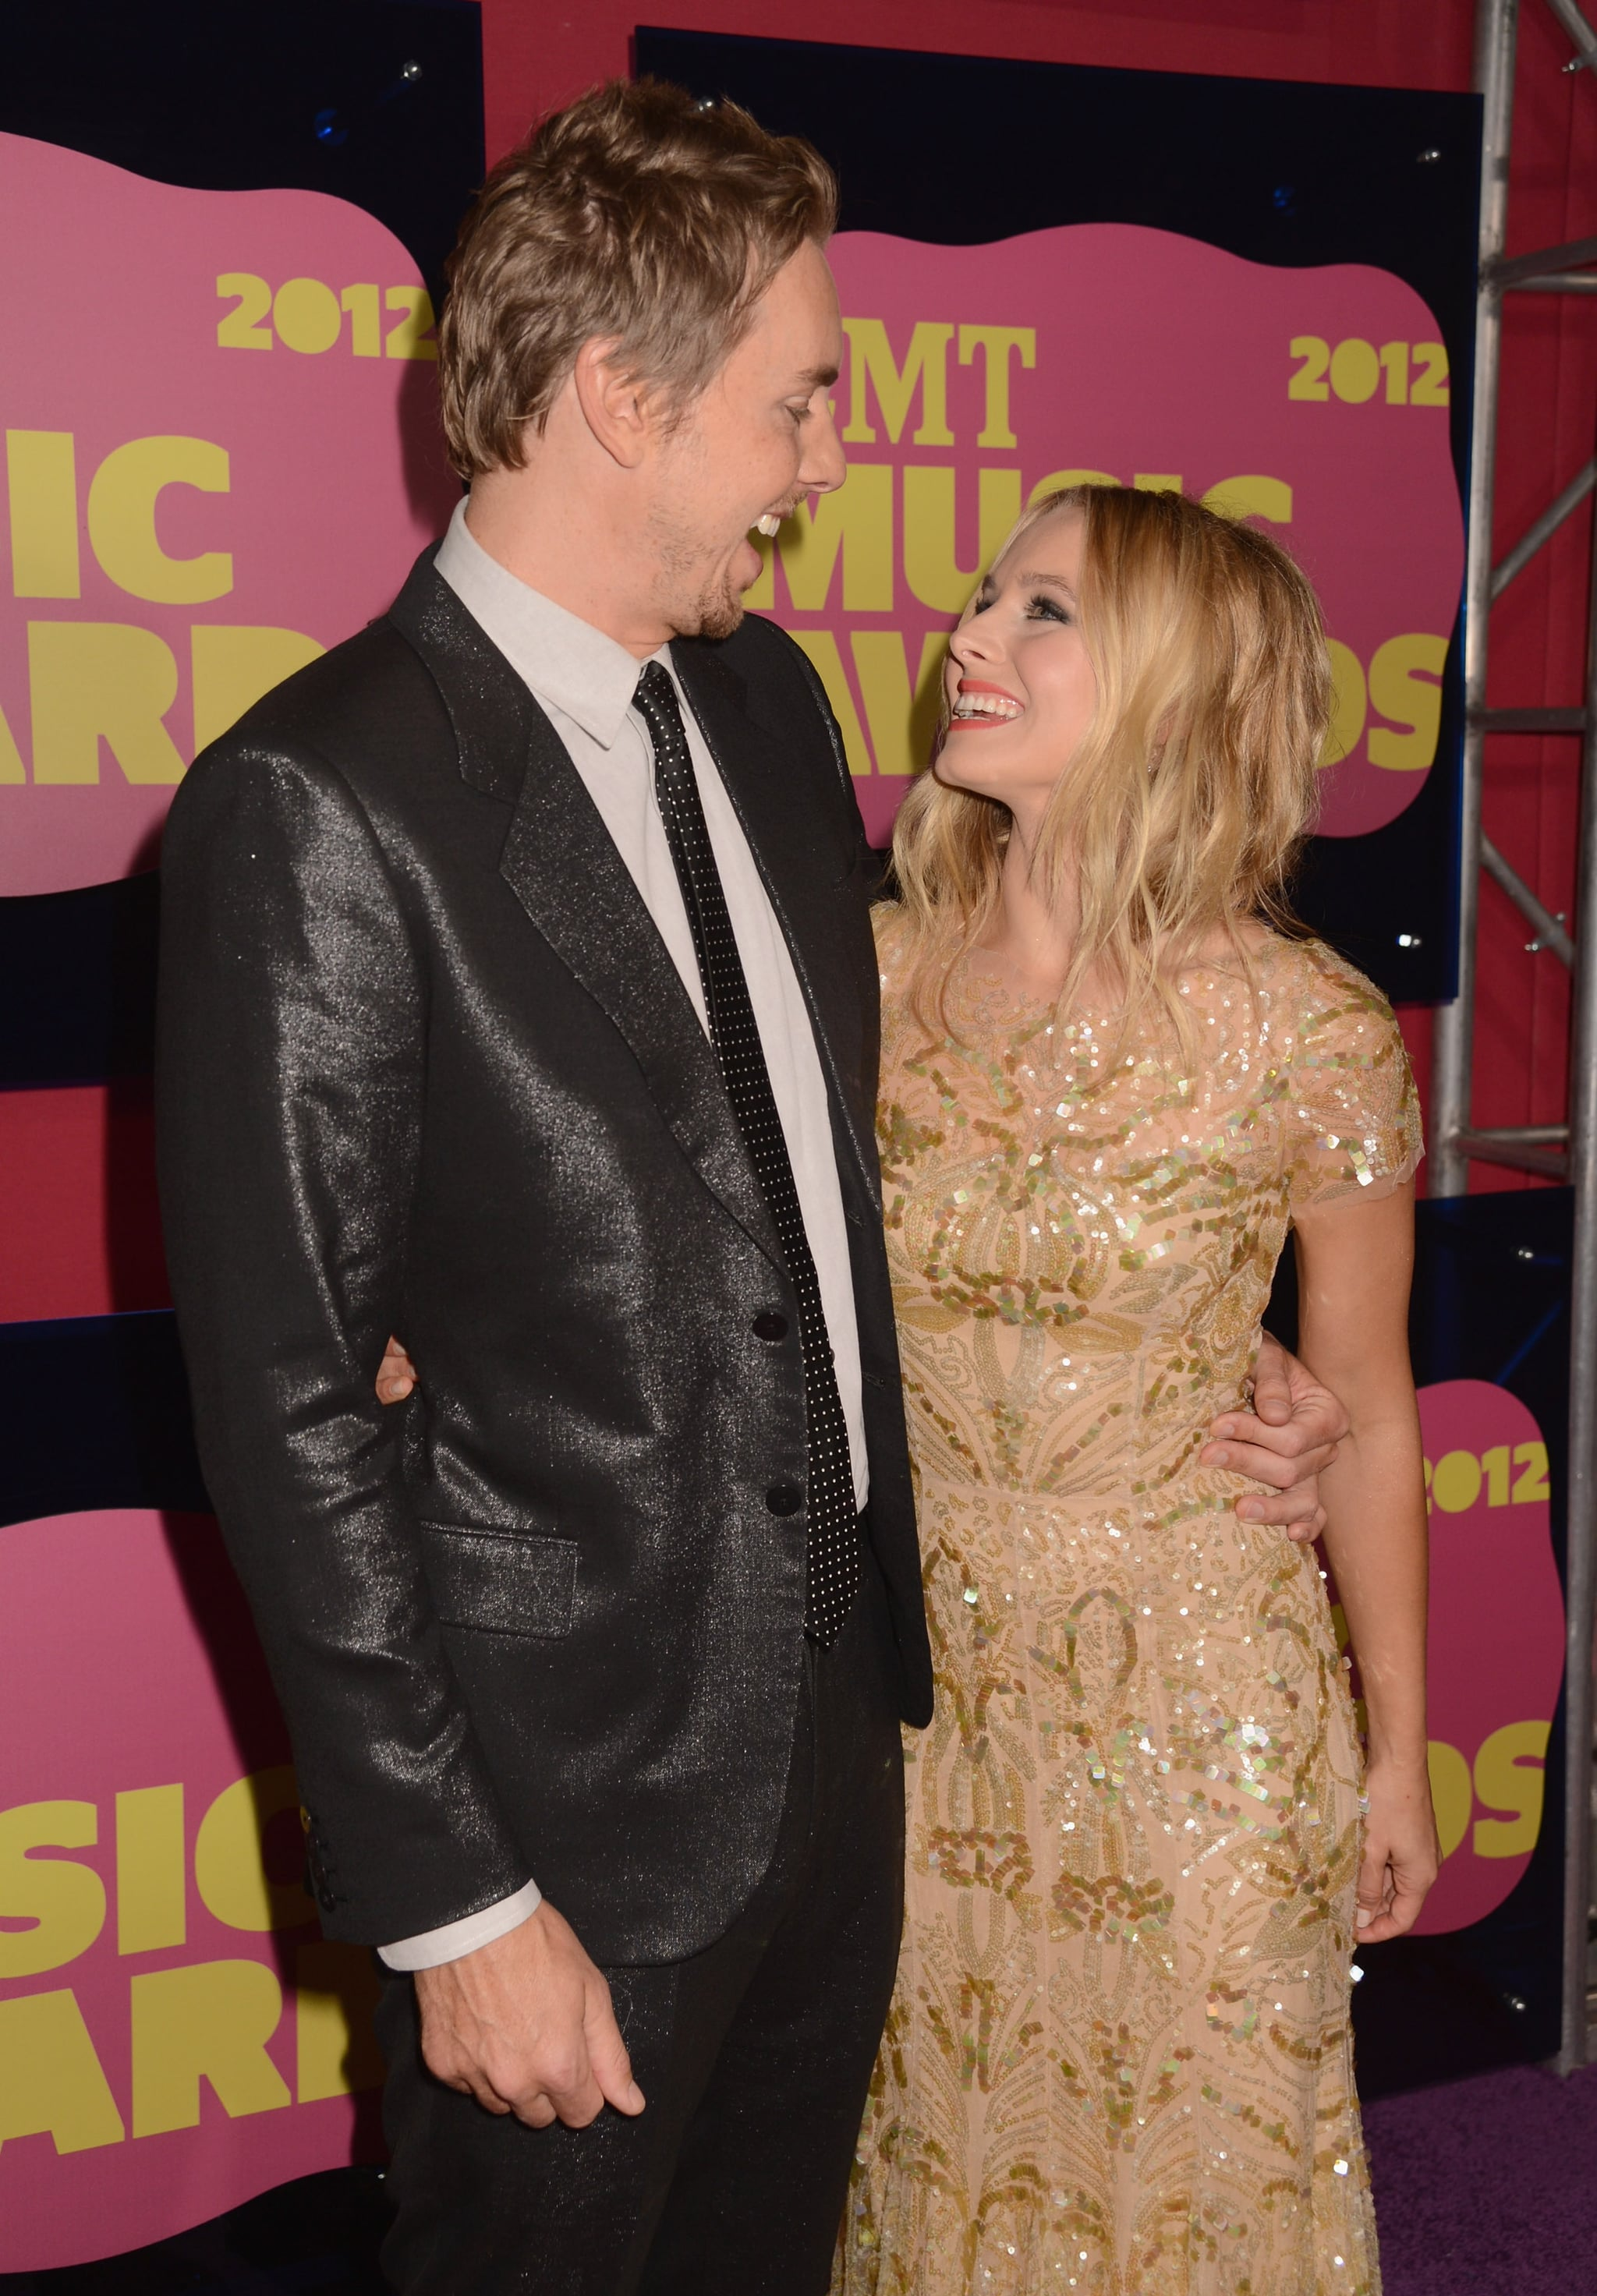 Dax and Kristen smiled big for the cameras at the 2012 CMT Music Awards in Nashville.